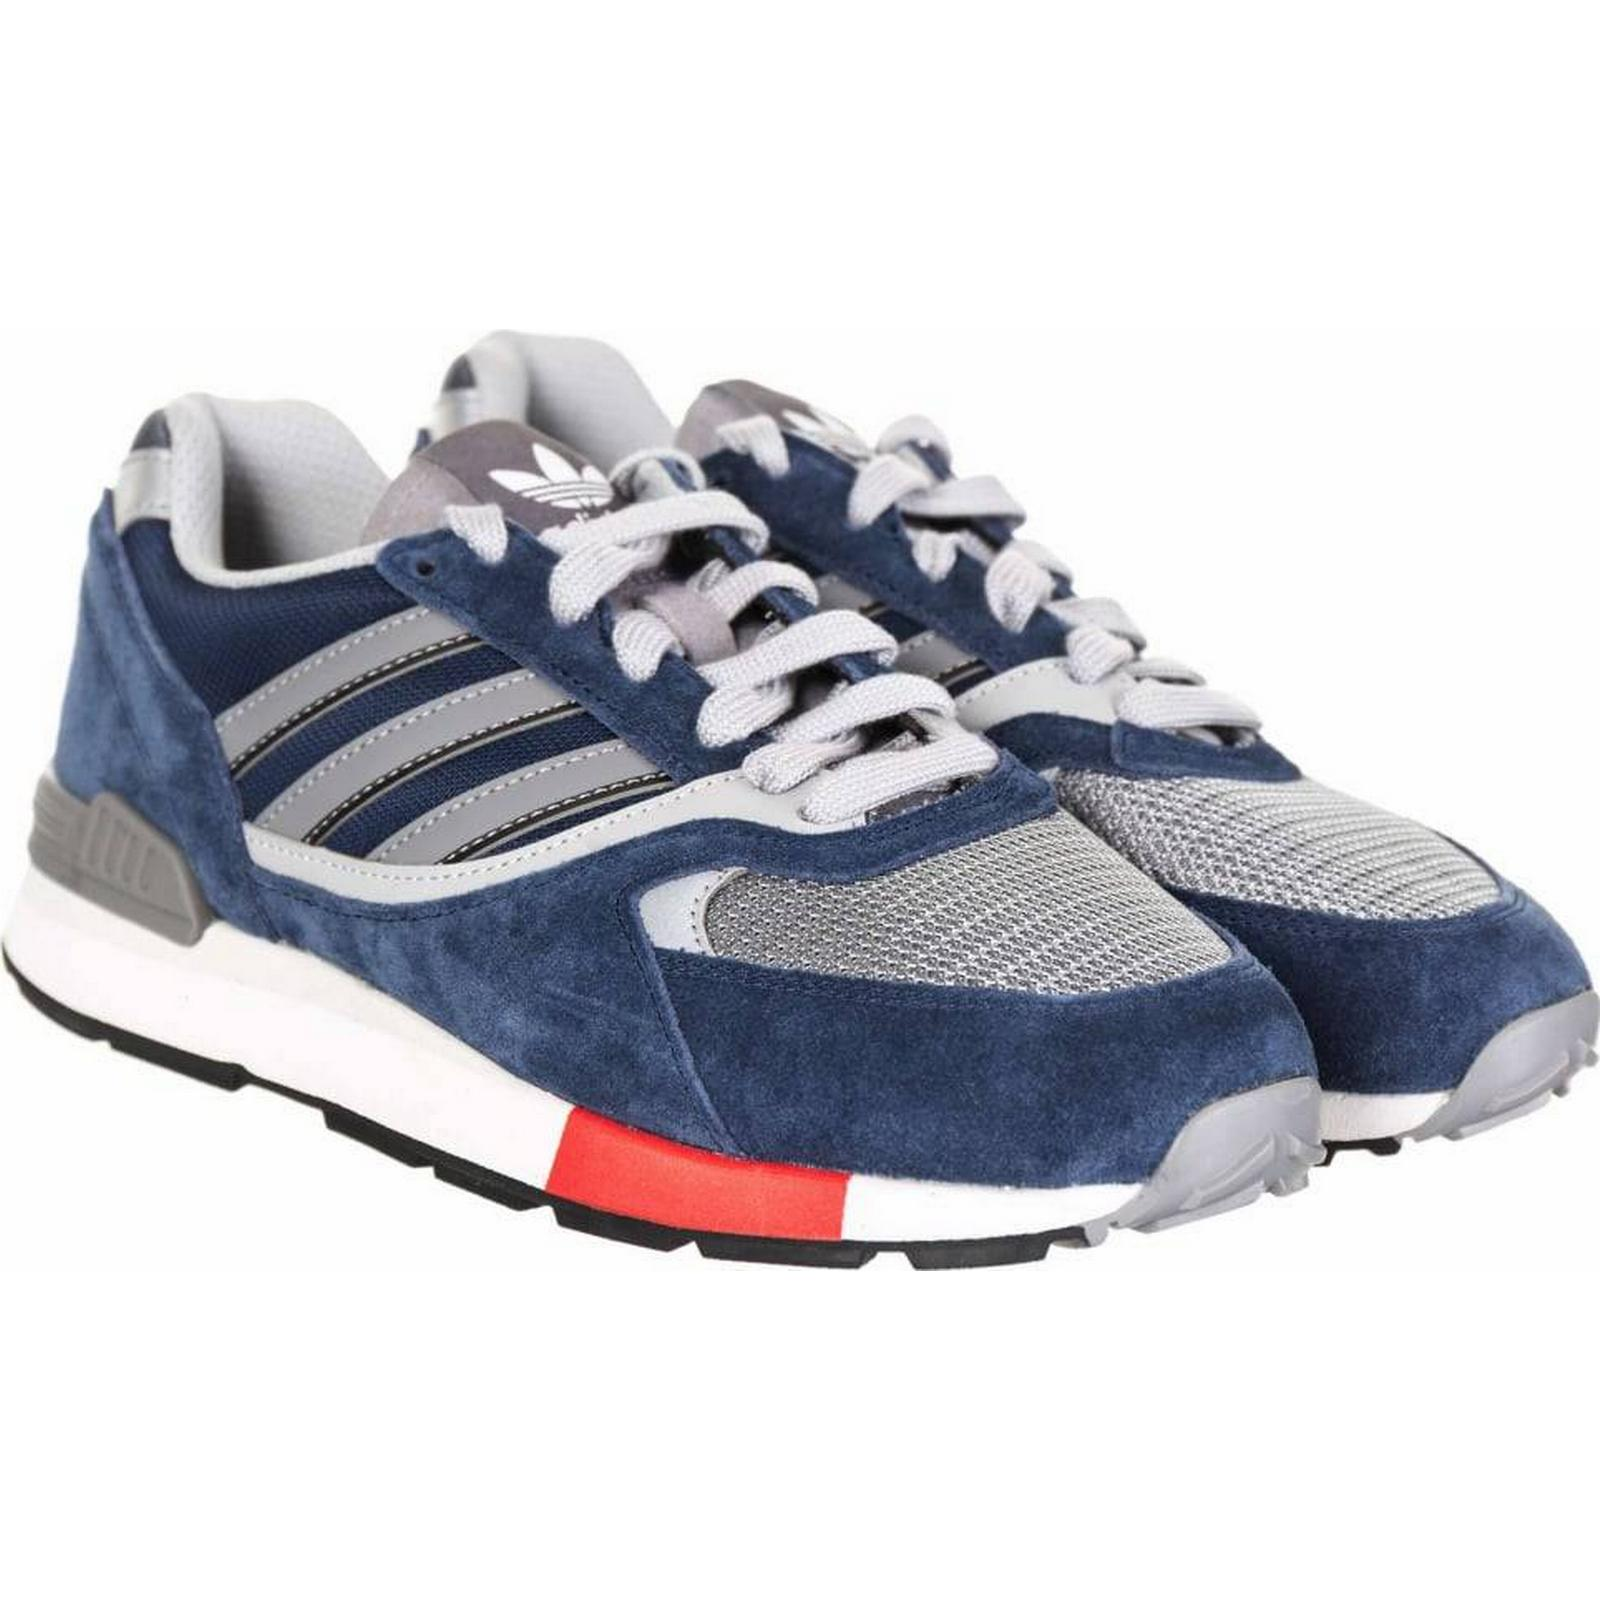 Adidas Originals Quesence Colour: Shoes - Collegiate Navy/Scarlet Colour: Quesence Col 30c253